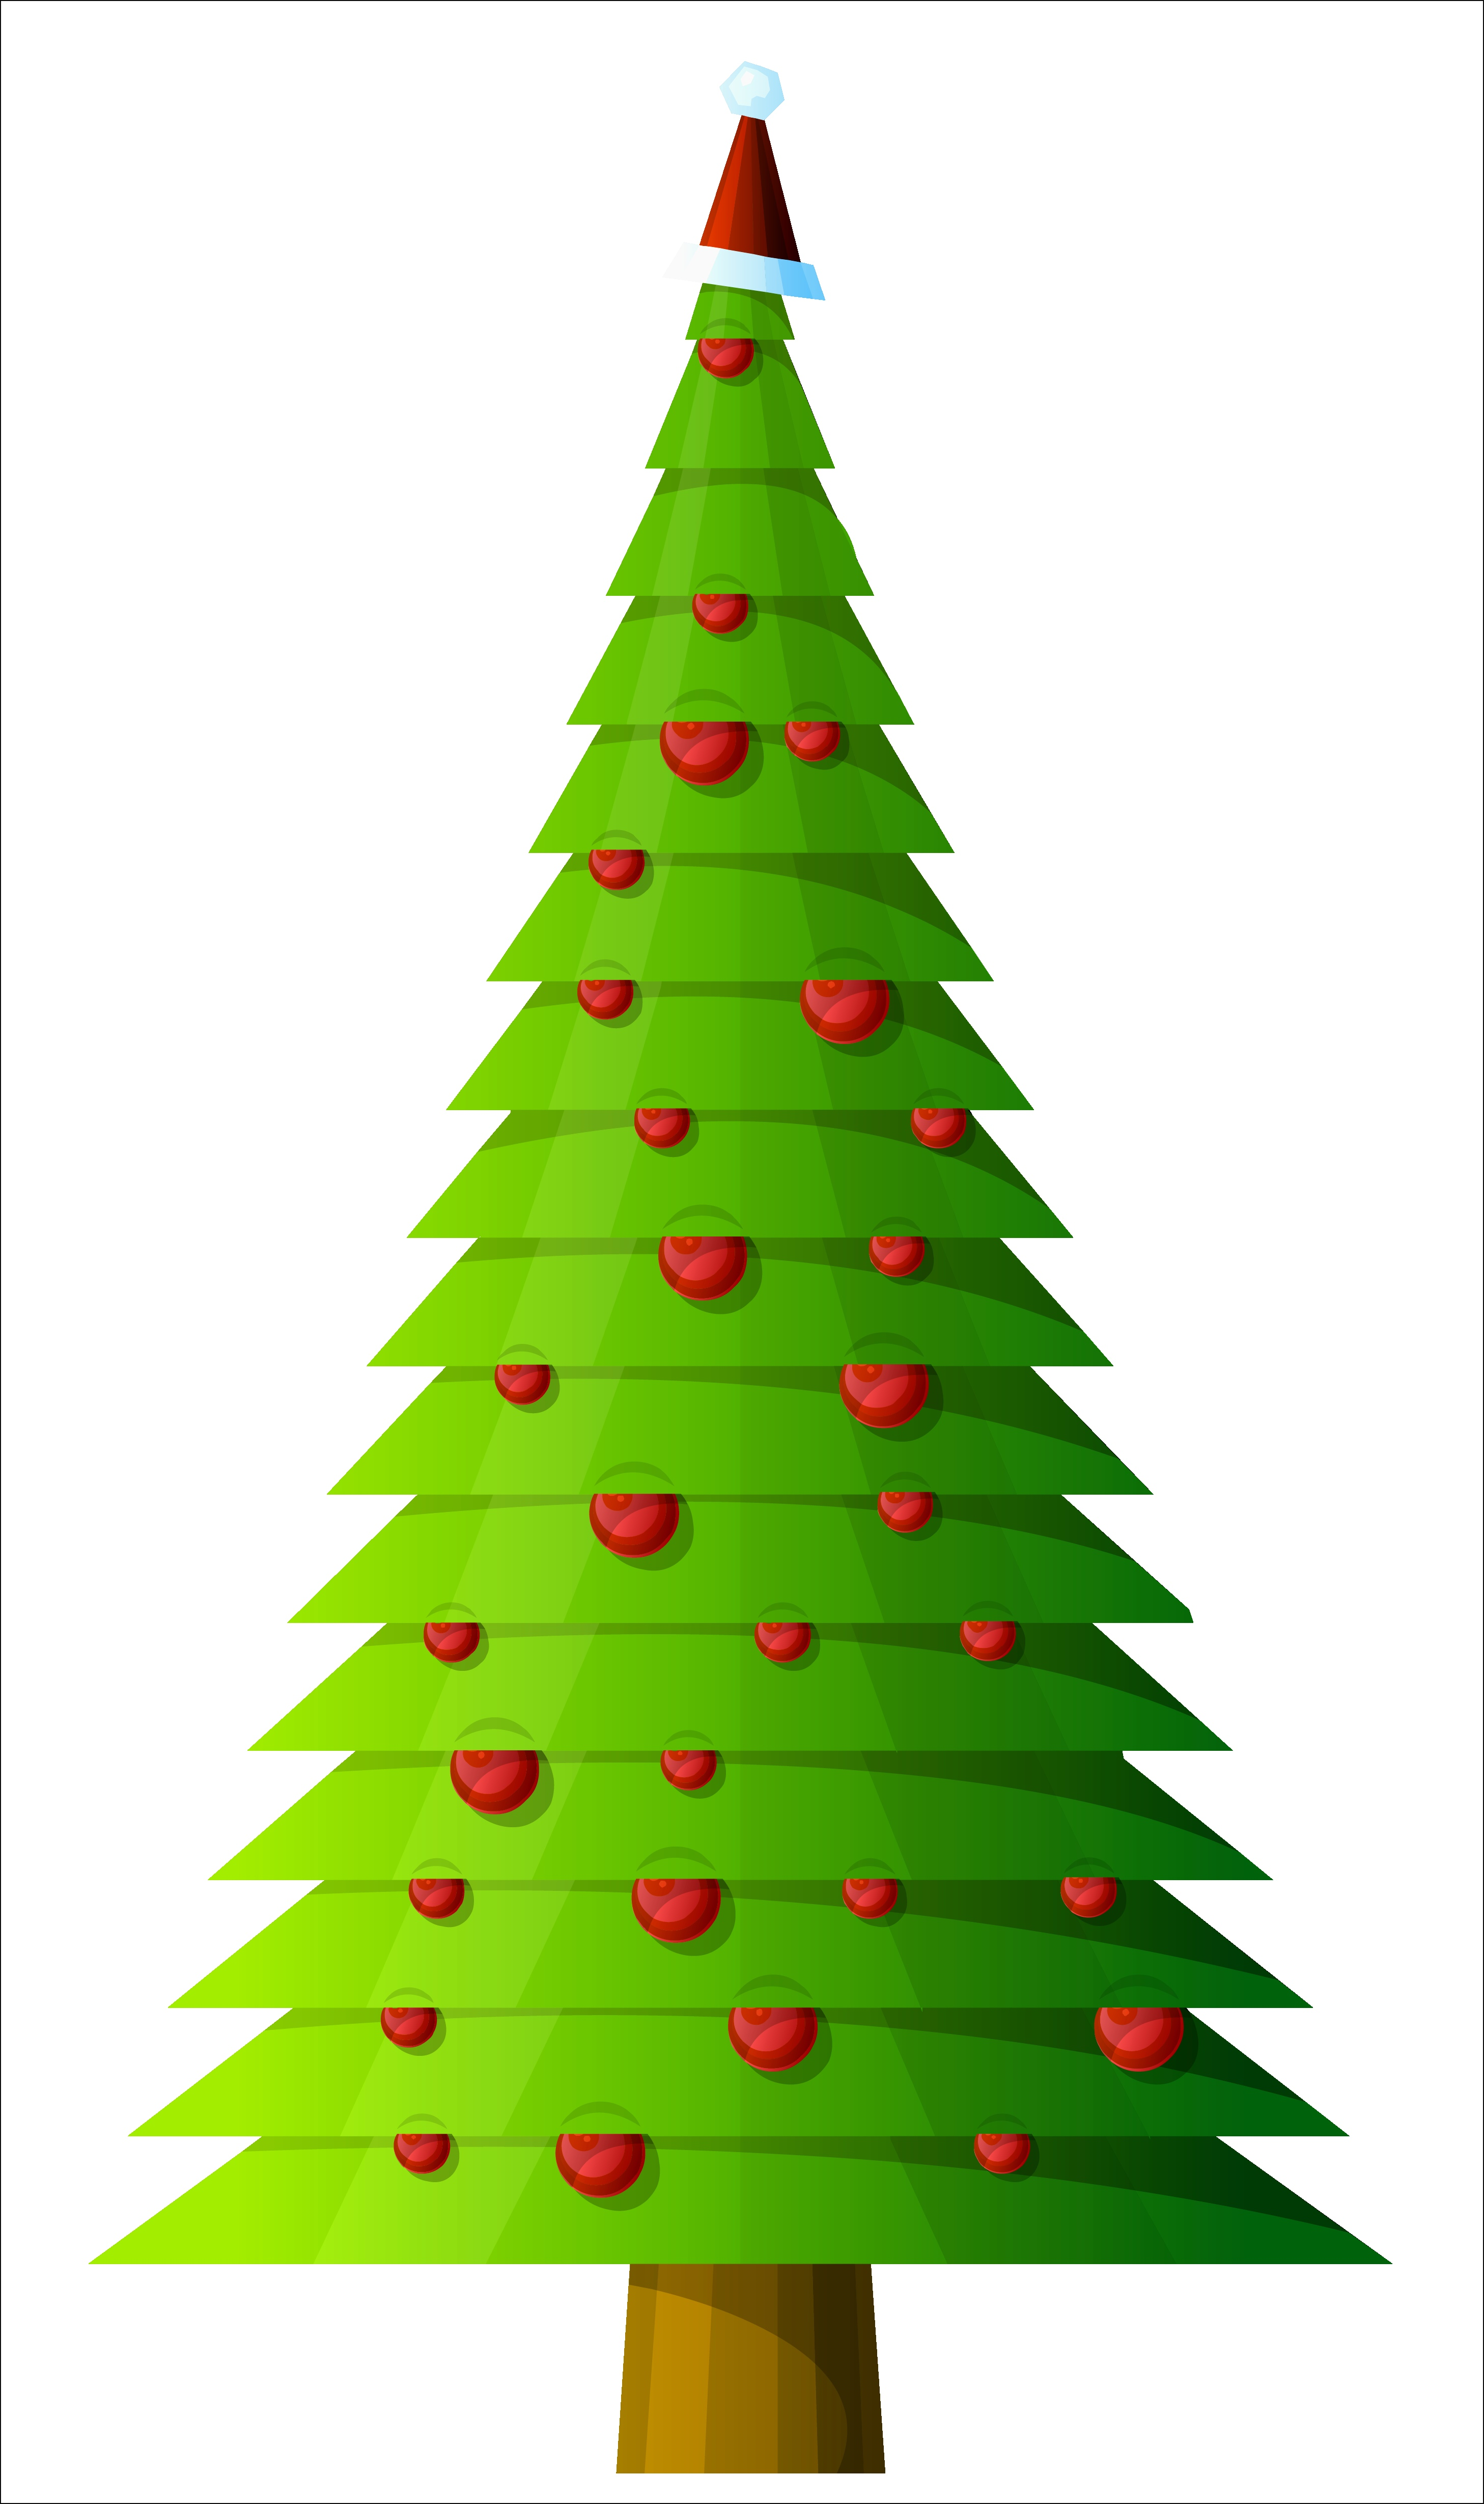 Evergreen Tree Clipart Free Download Best Evergreen Tree Clipart